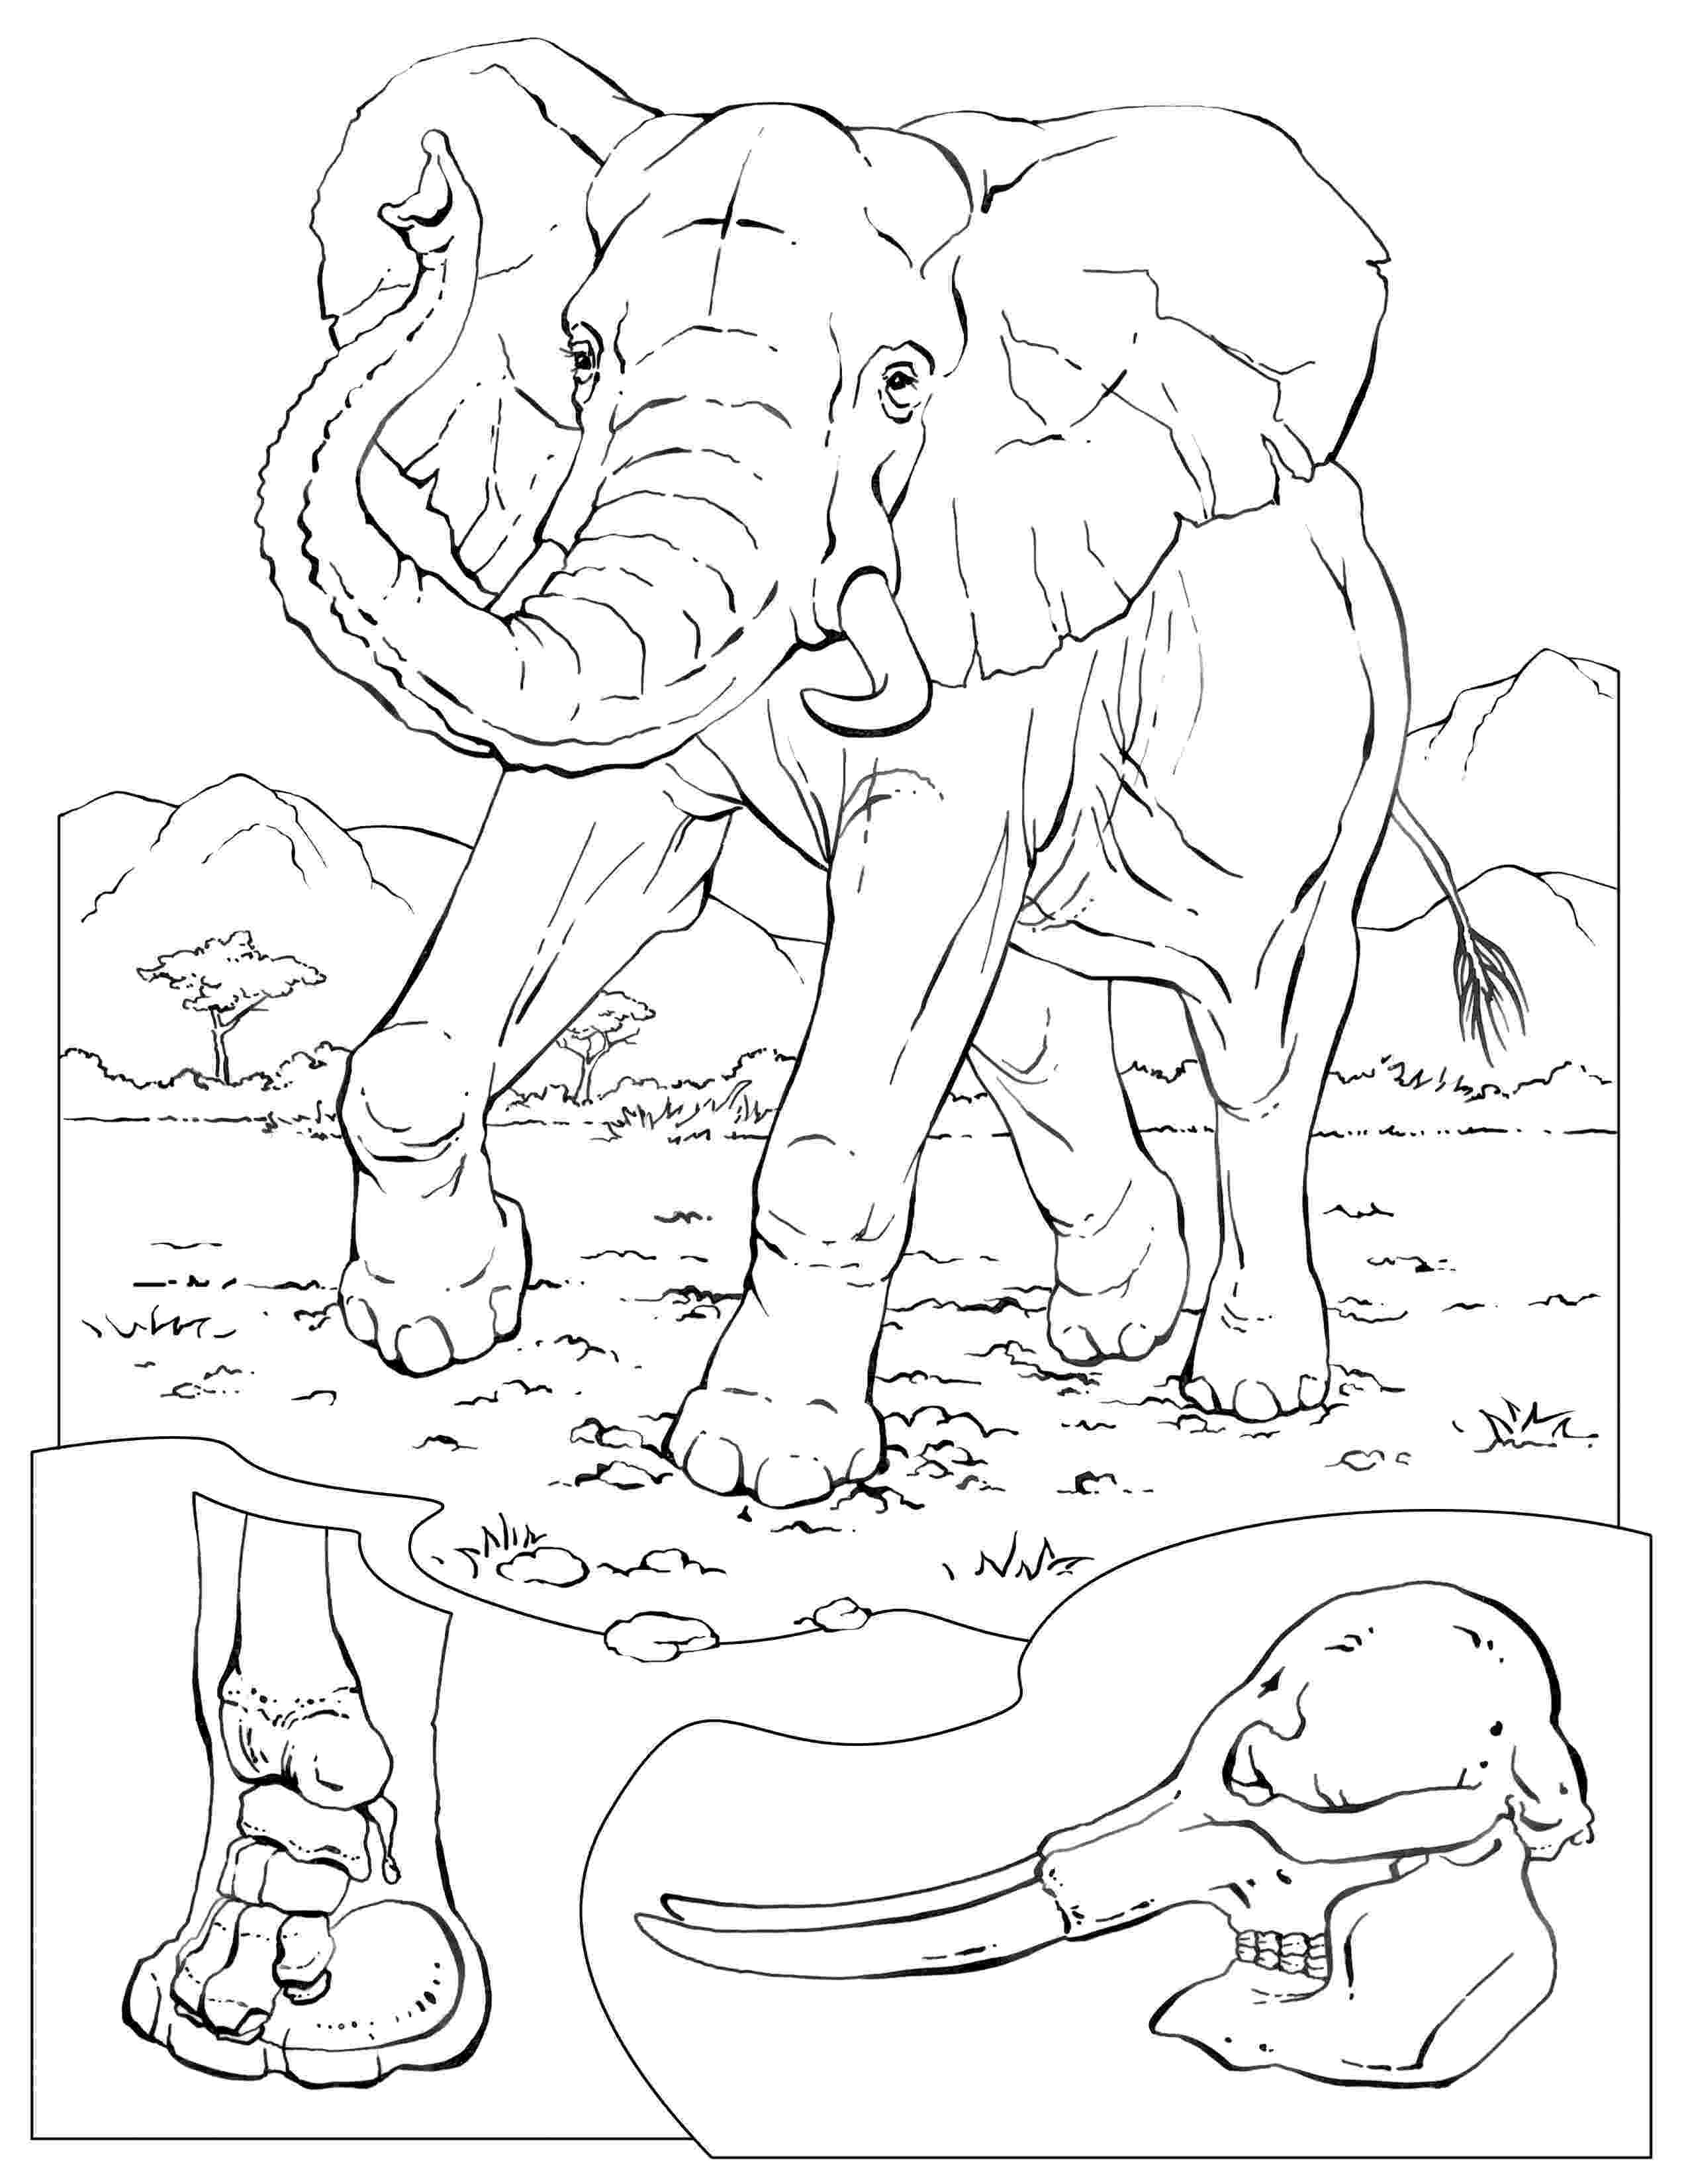 animal coloring pages national geographic national geographic coloring fish coloring pages animal national pages coloring geographic